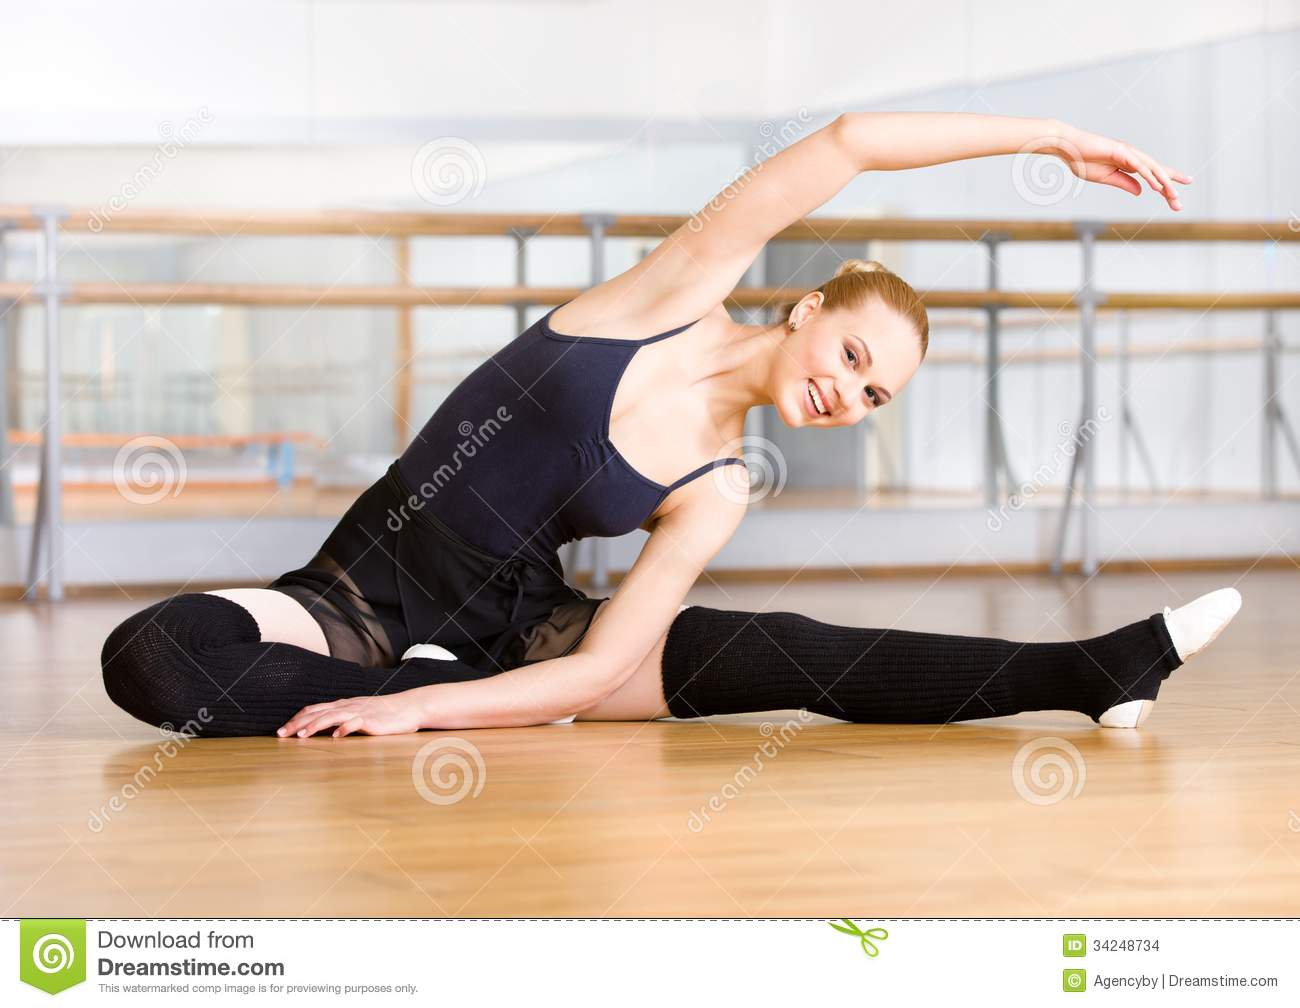 Bending ballet dancer stretches herself on the floor stock for On the floor on the floor